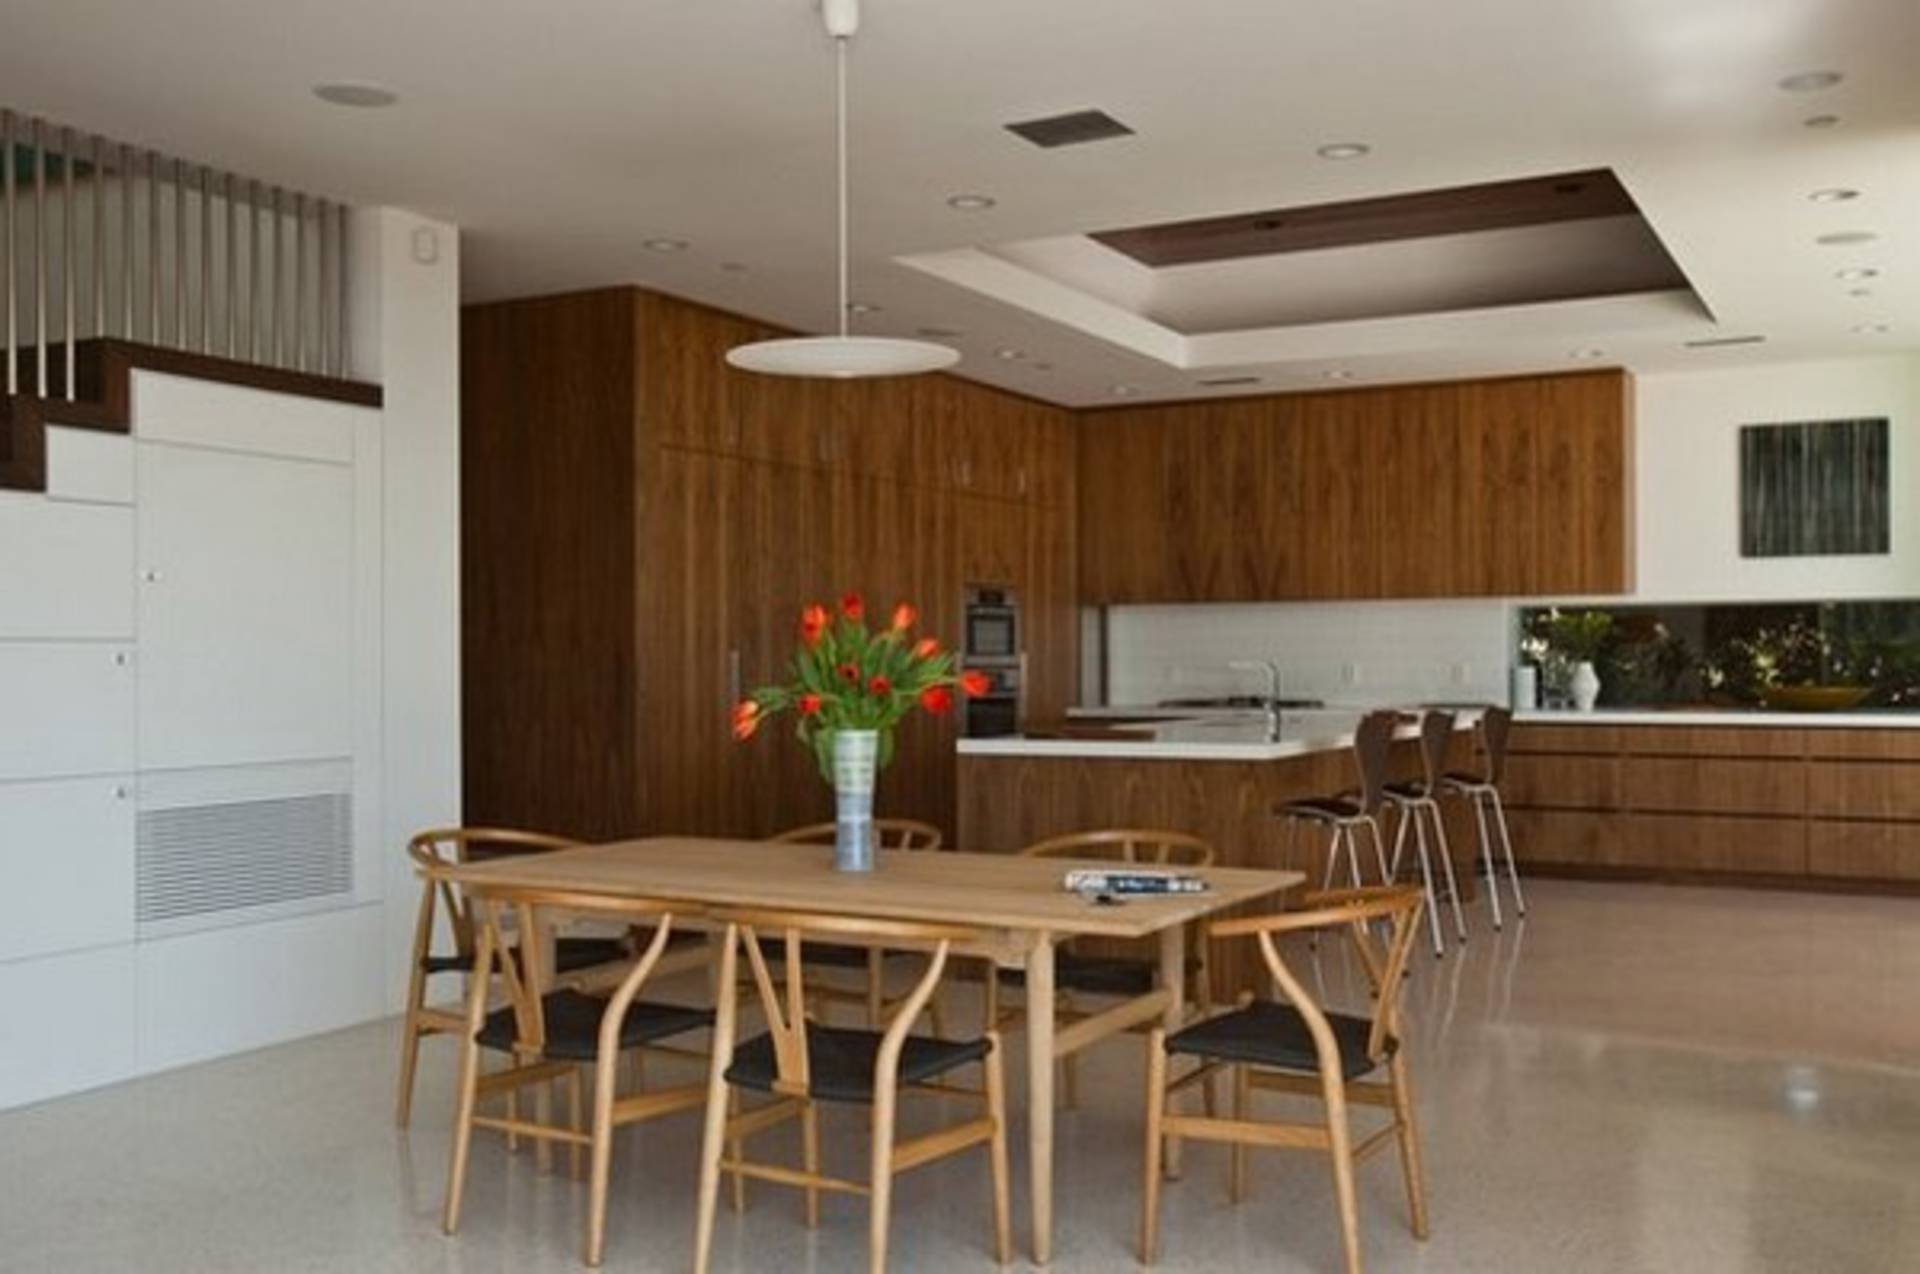 Luxury sunset plaza residence in the hollywood hills - Suelos casas modernas ...